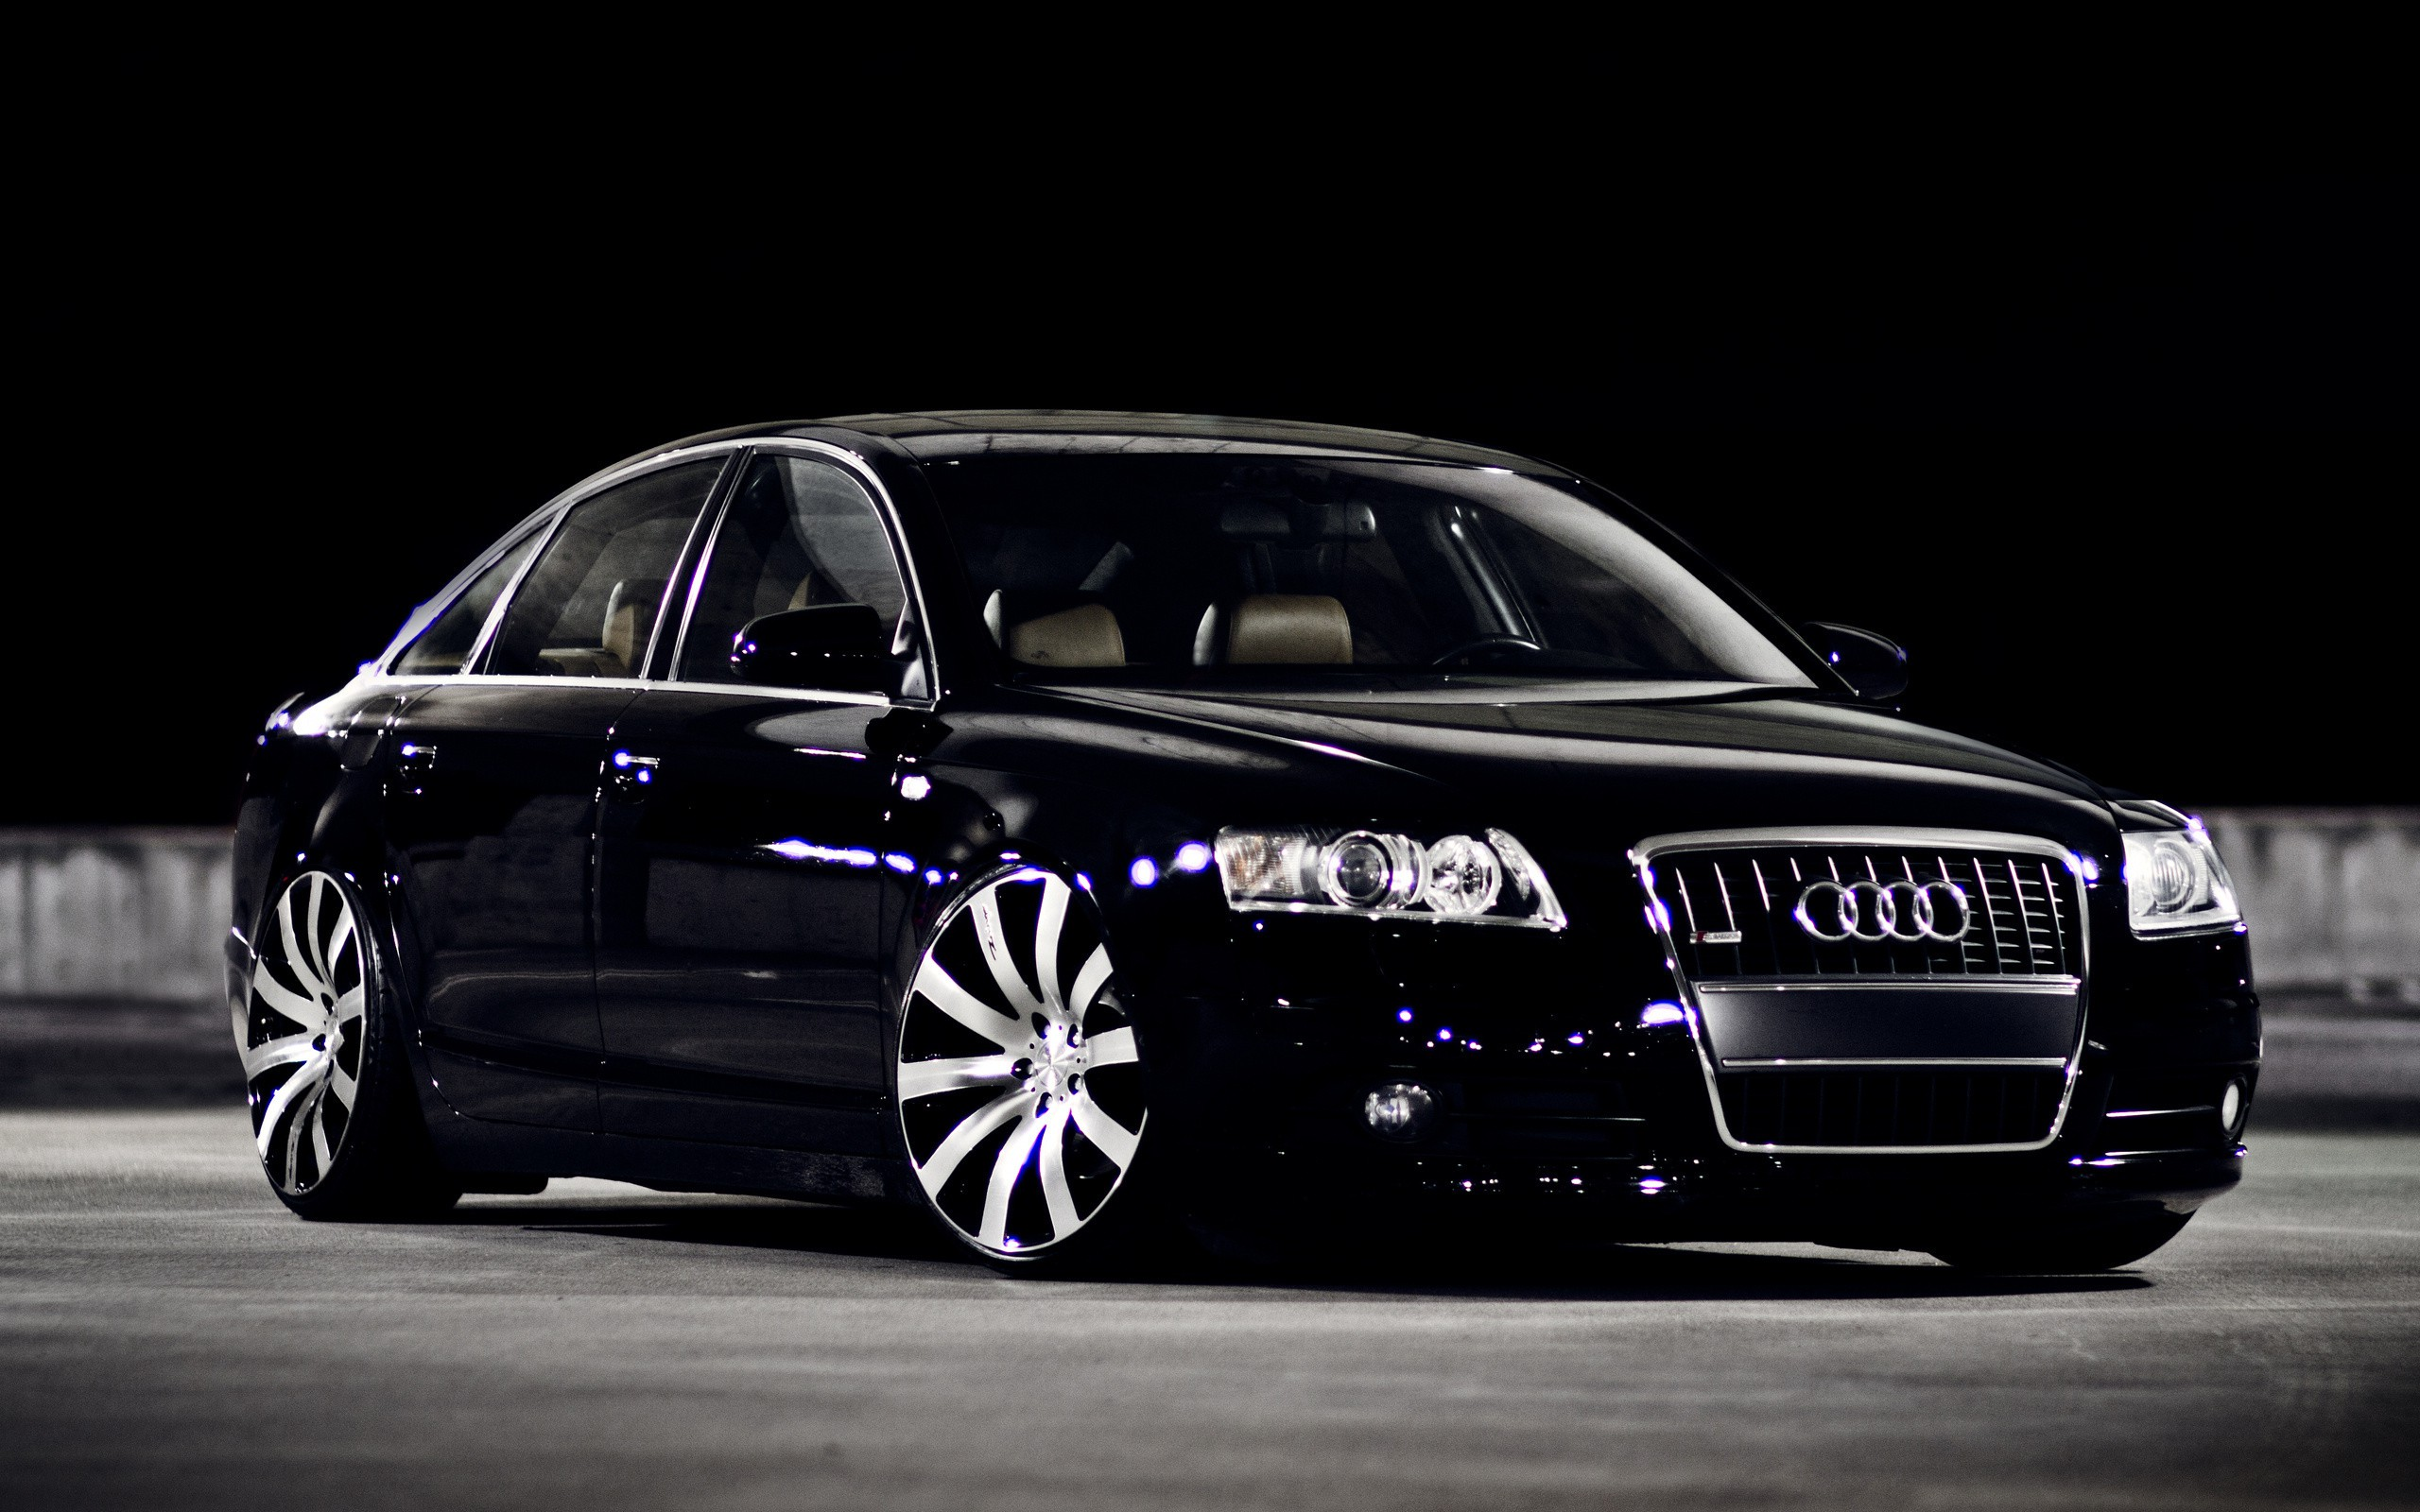 2560x1600 - Audi A6 Wallpapers 5